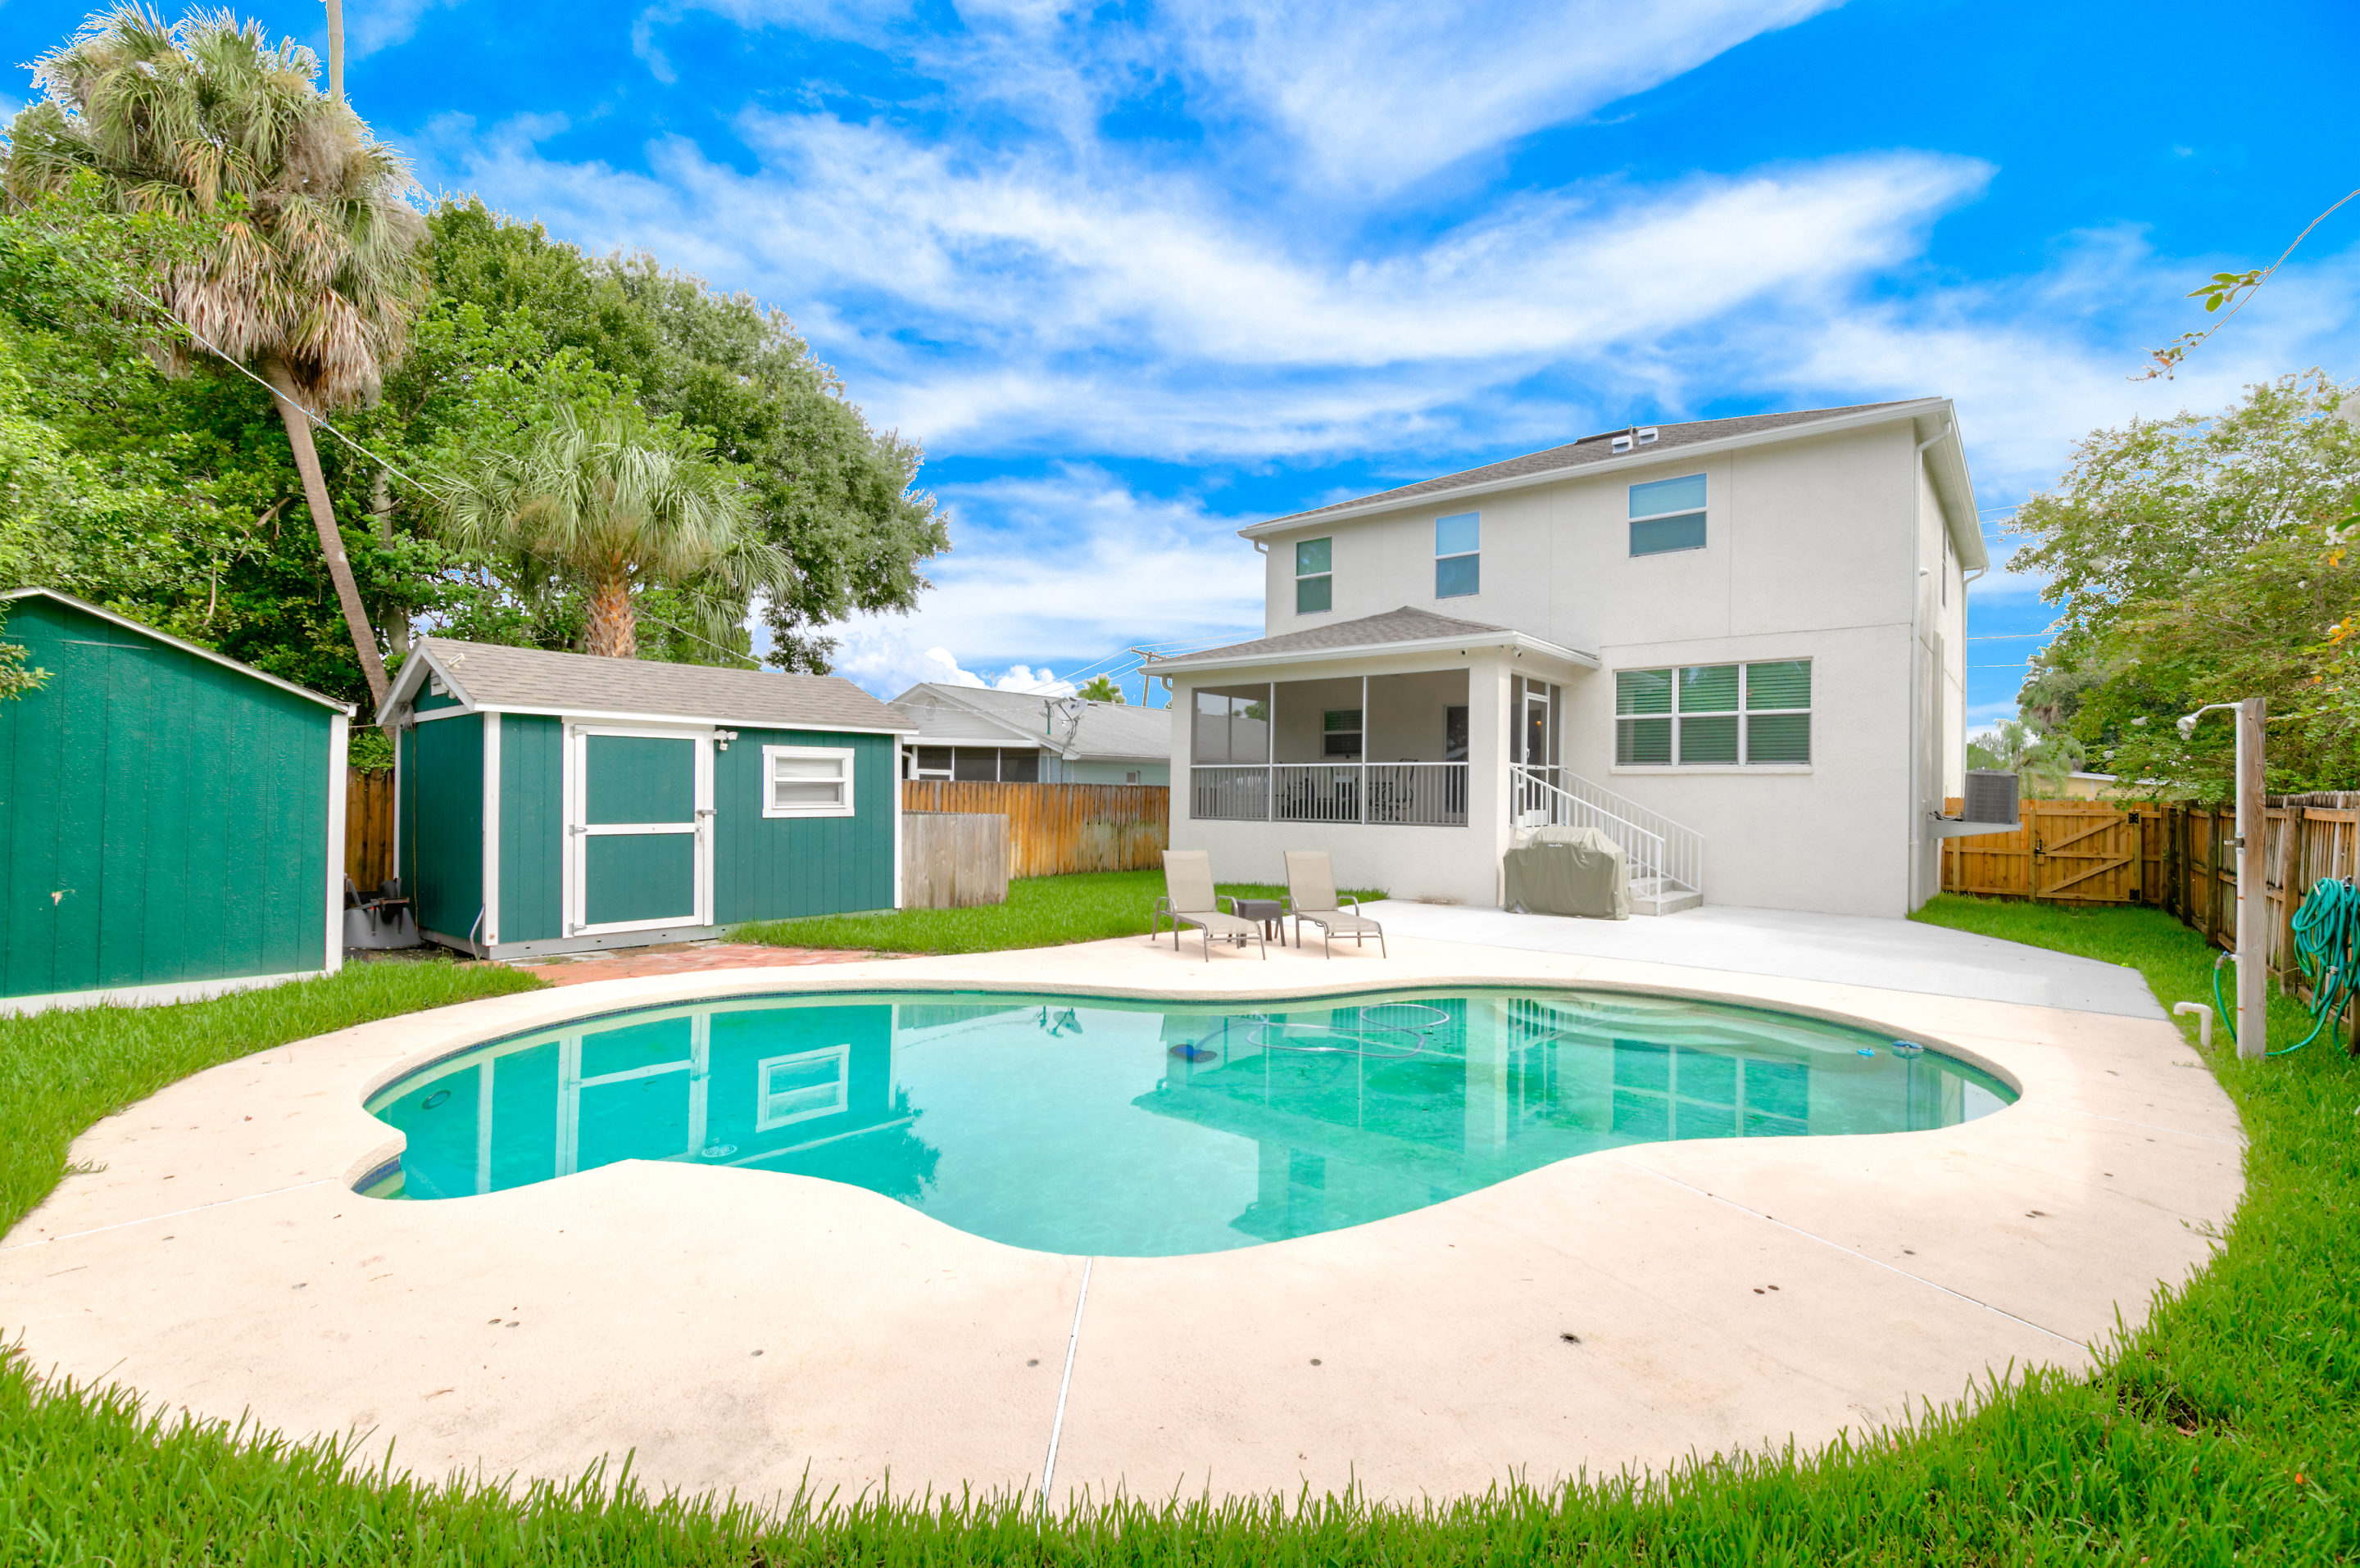 Beautiful-Pool-with-Plenty-of-Outdoor-Space-406-Chippewa-Ave-Davis-Islands